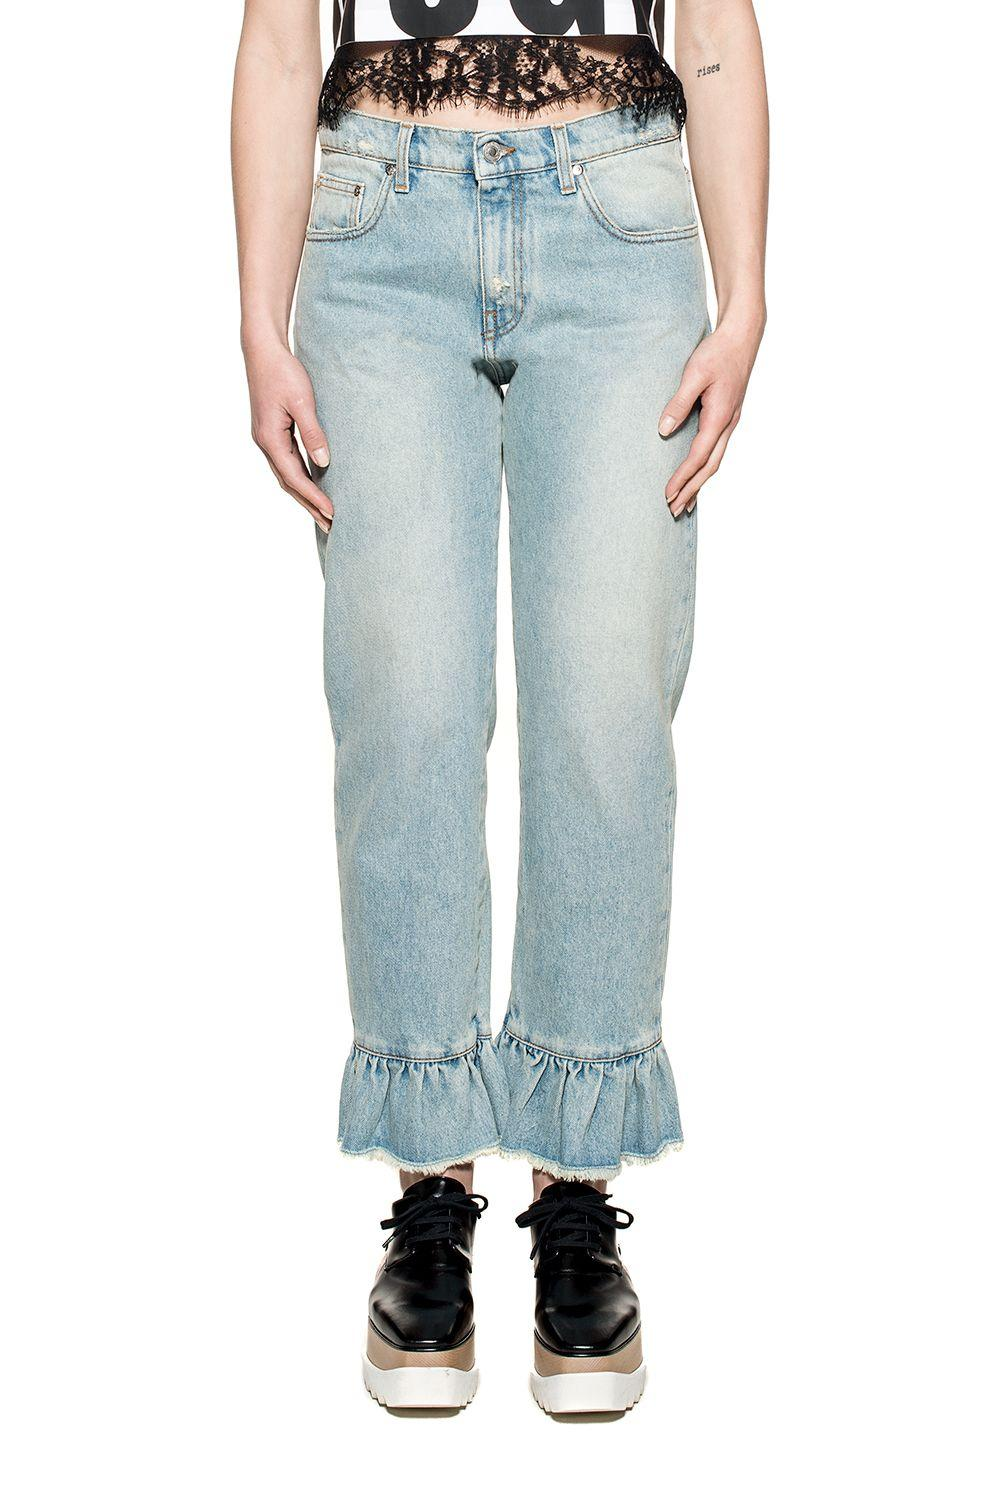 Msgm Light Blue Ruffled Denim Jeans